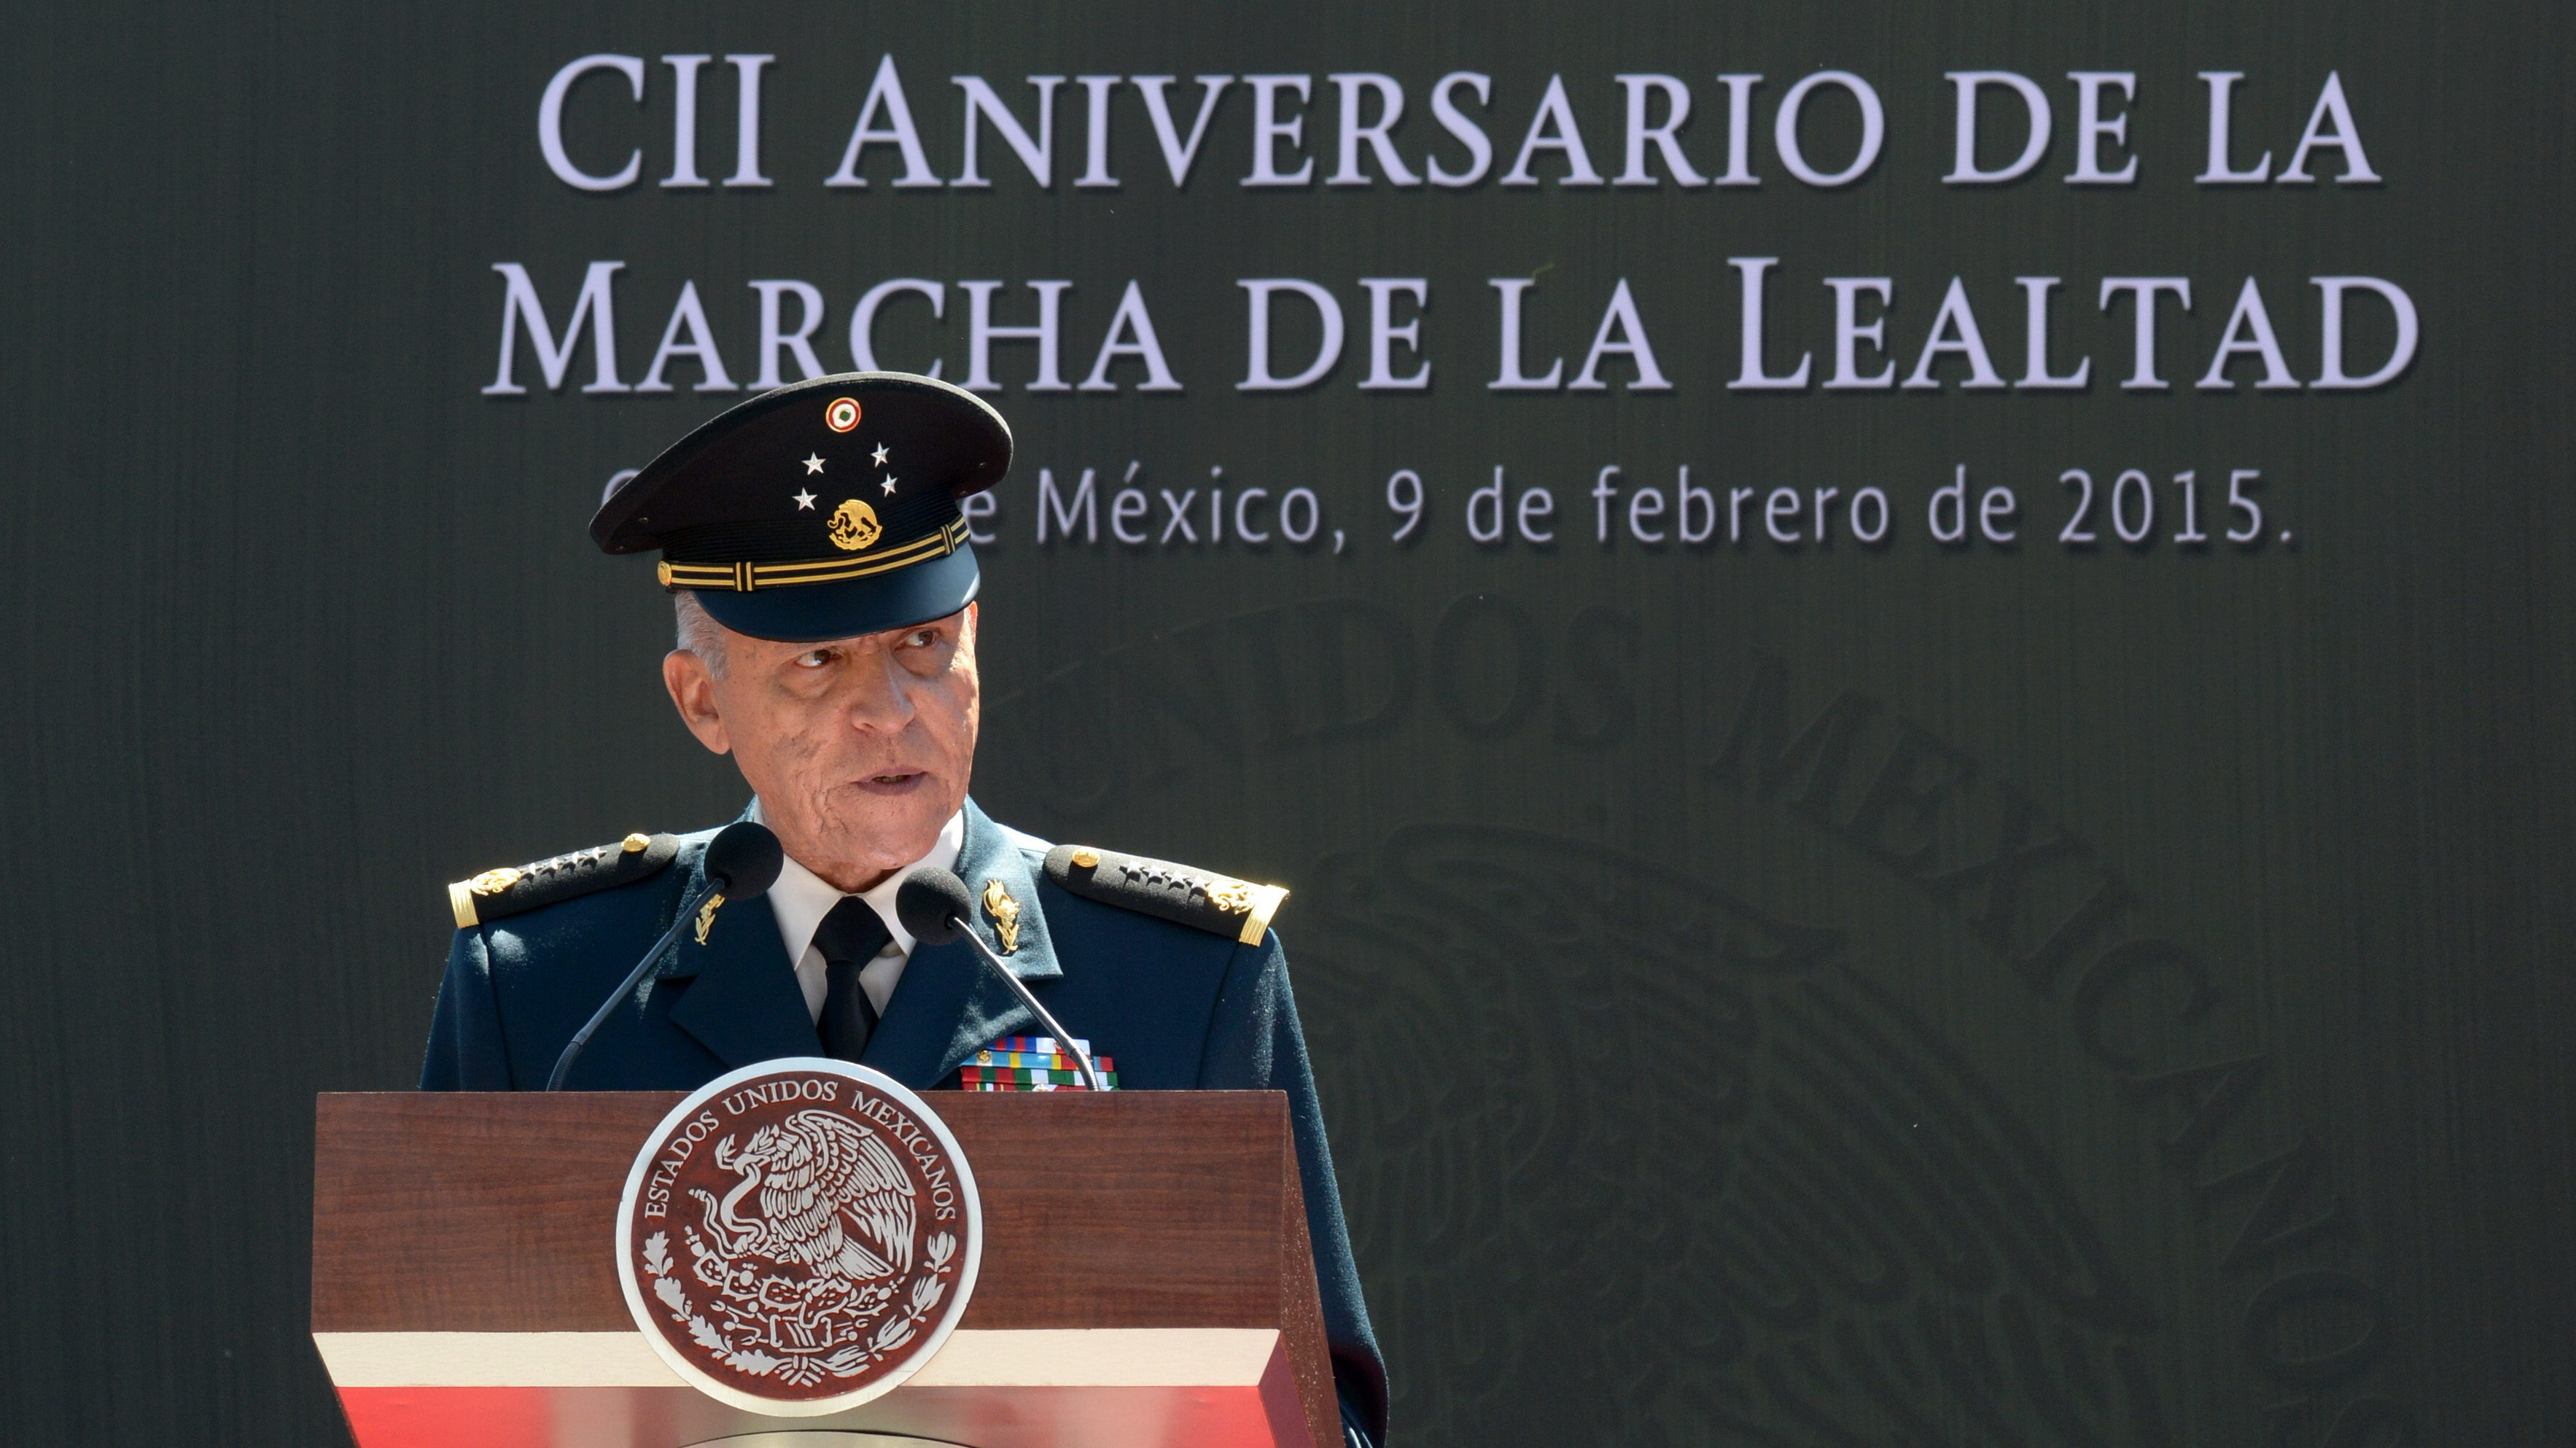 Soldiers 'Won't Be Treated Like Criminals' in Ayotzinapa Case, Mexico Army Chief Says